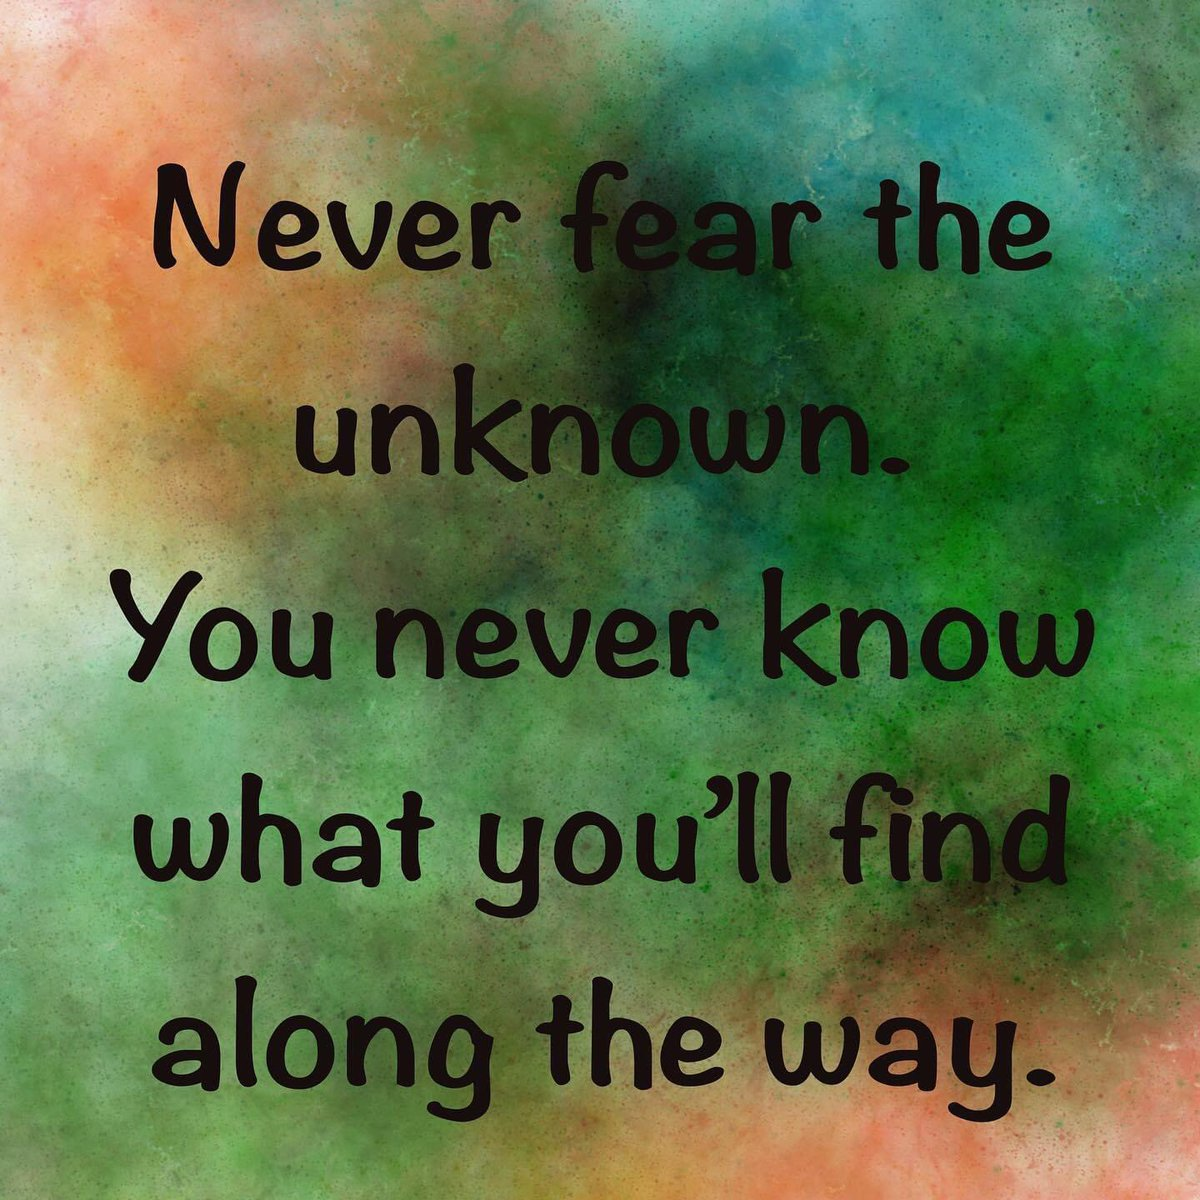 Good morning, lovelies.  I missed yesterday's #wordsofwisdom, so today, I leave you all with this.  I hope you all have a great day/night. Whatever you do, stay safe and healthy. The best of blessings to you and yours.  #quotes #life #unknown #dontfearthereaper #livelifeyourway